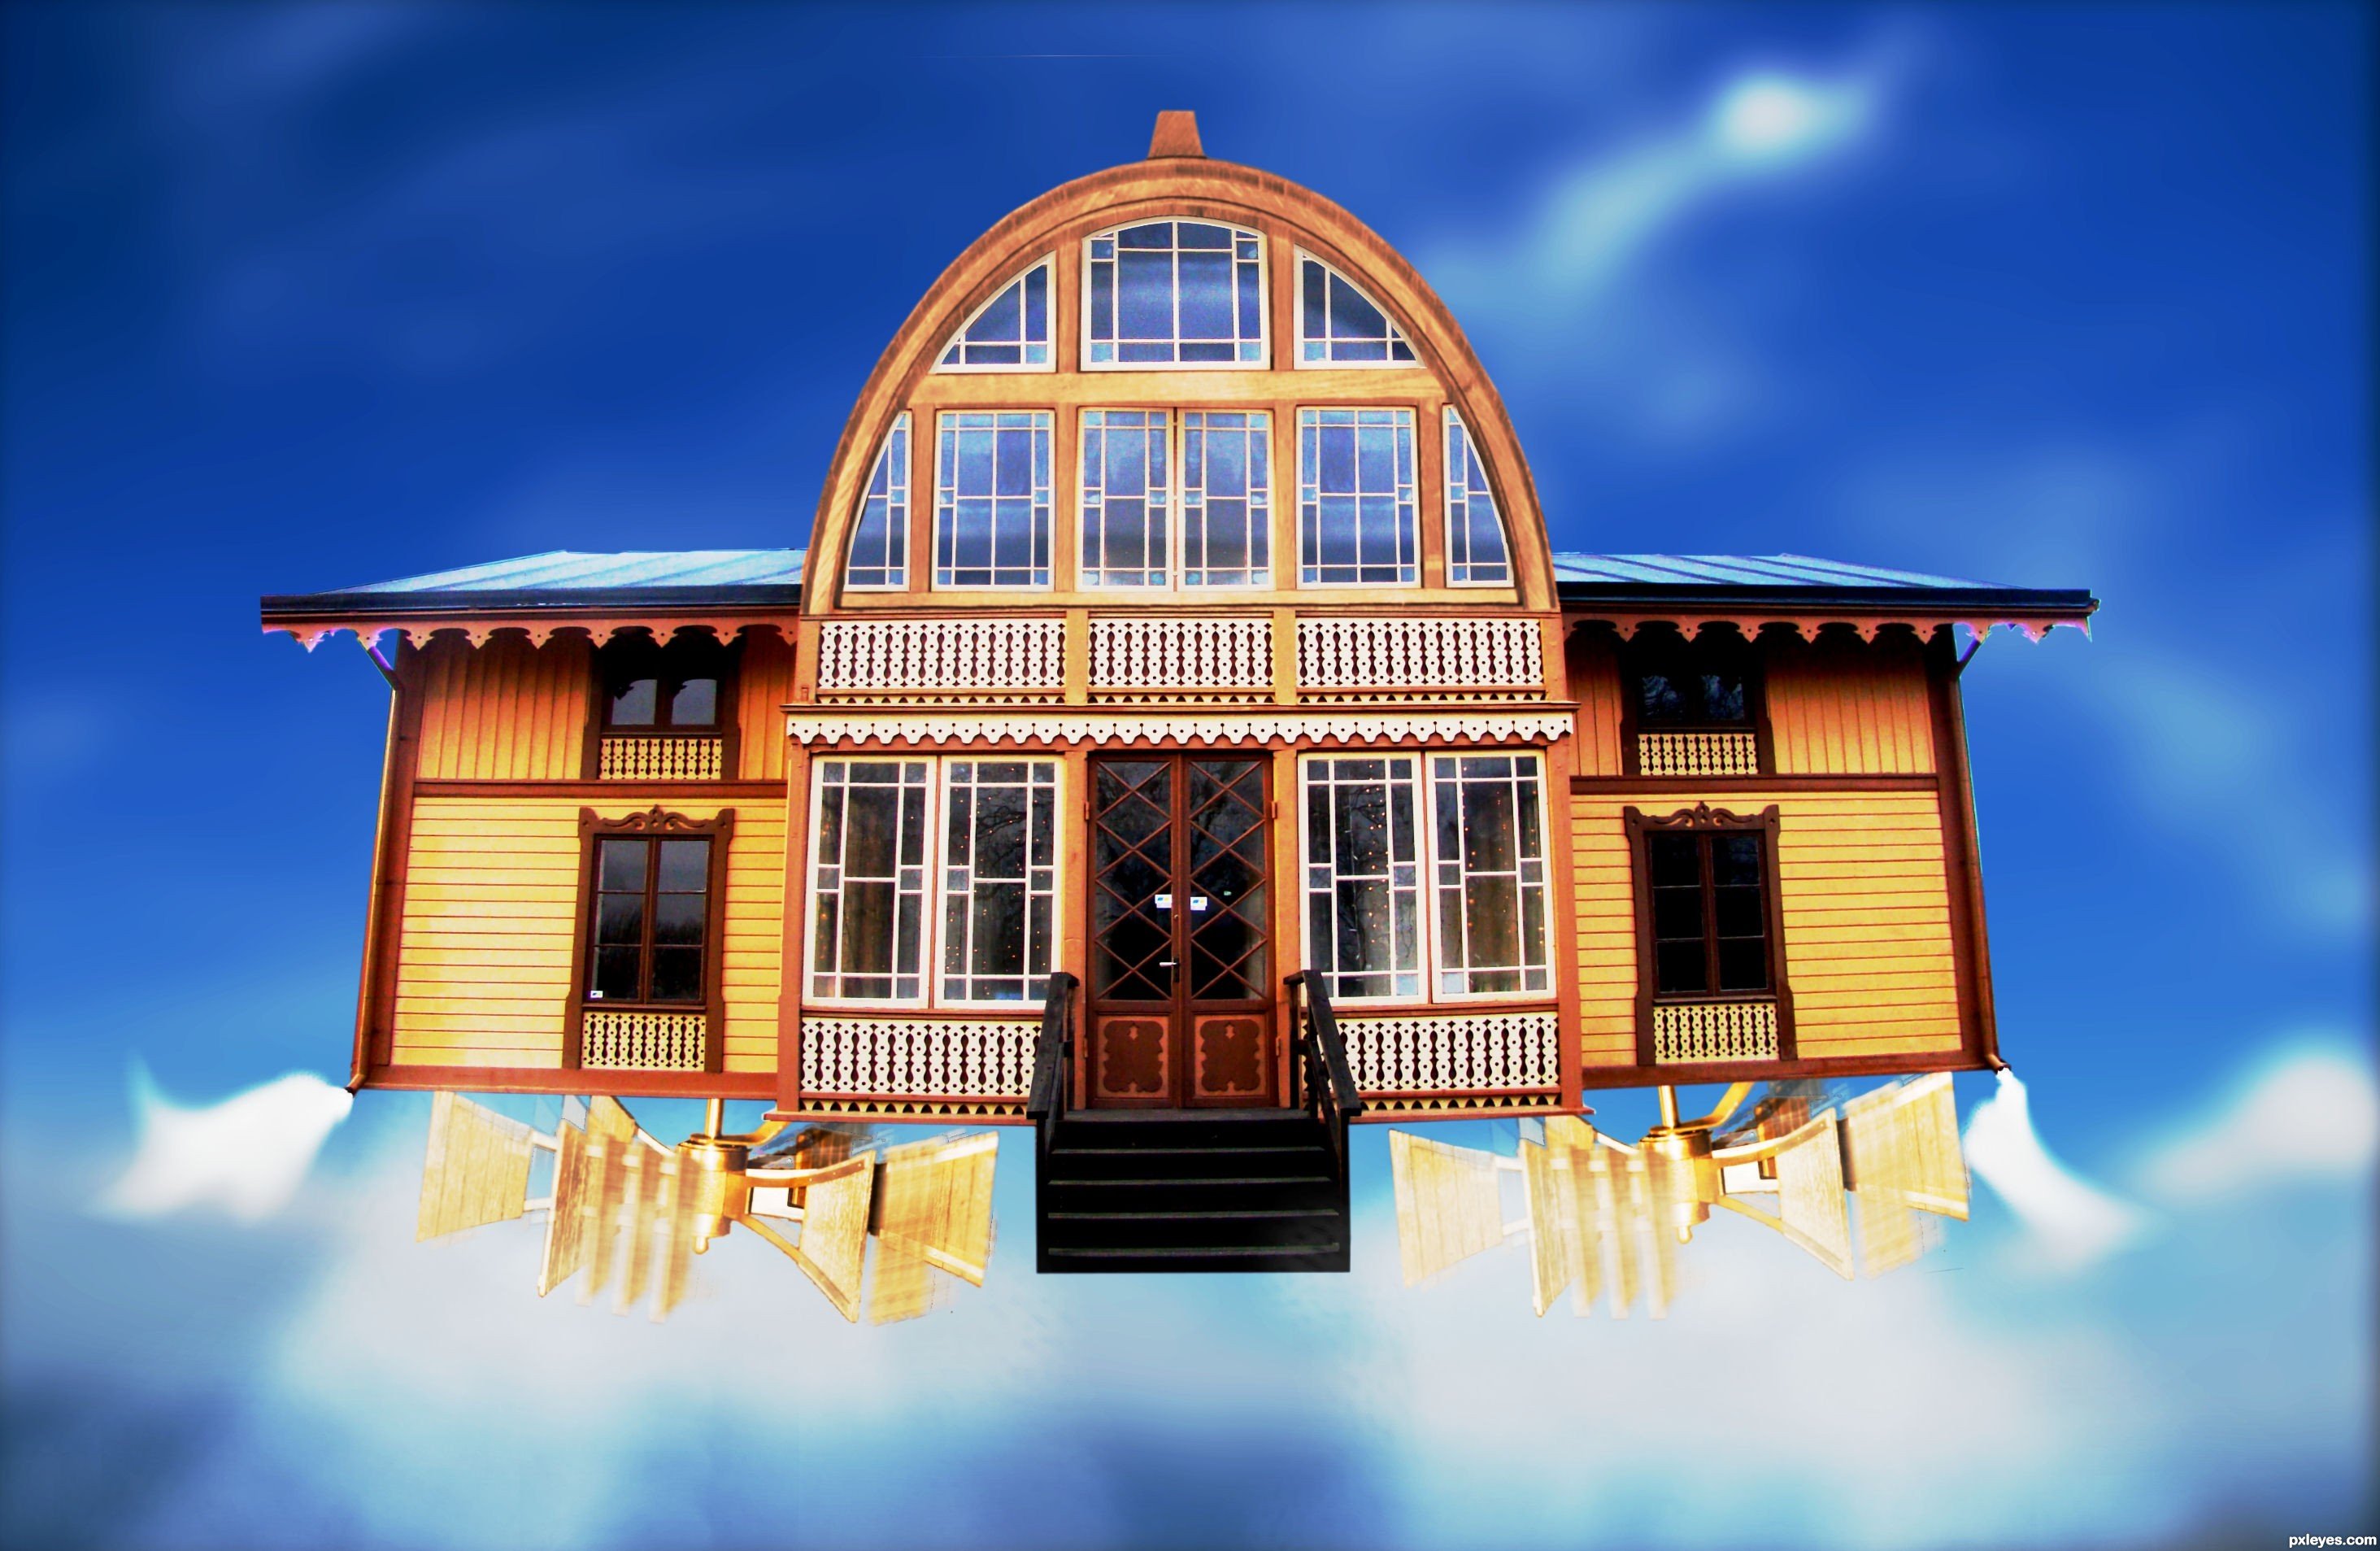 Flying house images galleries with a for Flying haus